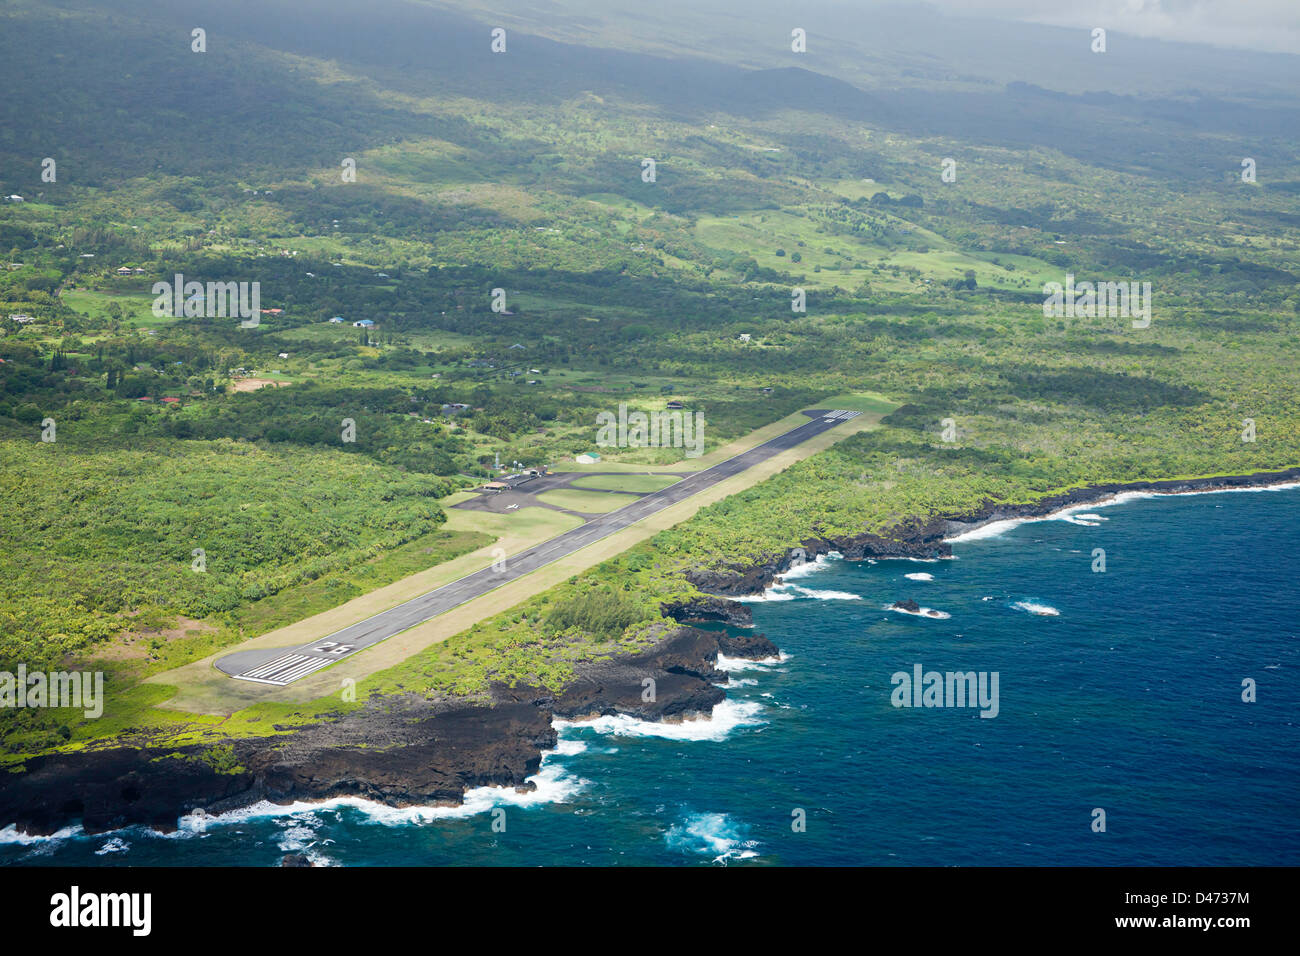 An aerial view of Hana's Airport next to the Pacific Ocean on the east shore of the island of Maui, Hawaii. - Stock Image